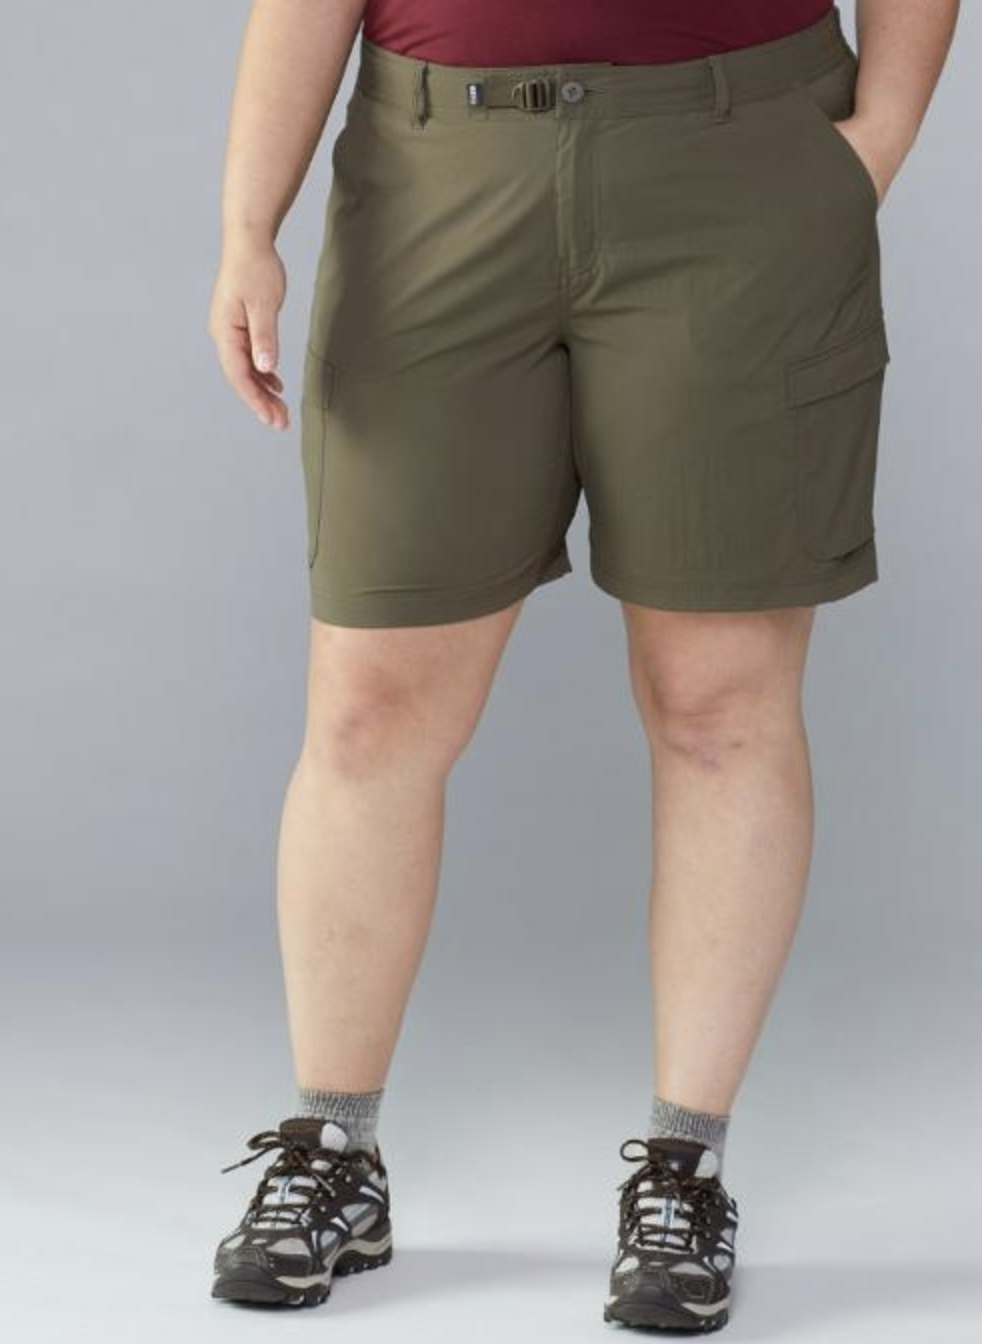 model in olive green  knee-length shorts with many pockets and an adjustable waist